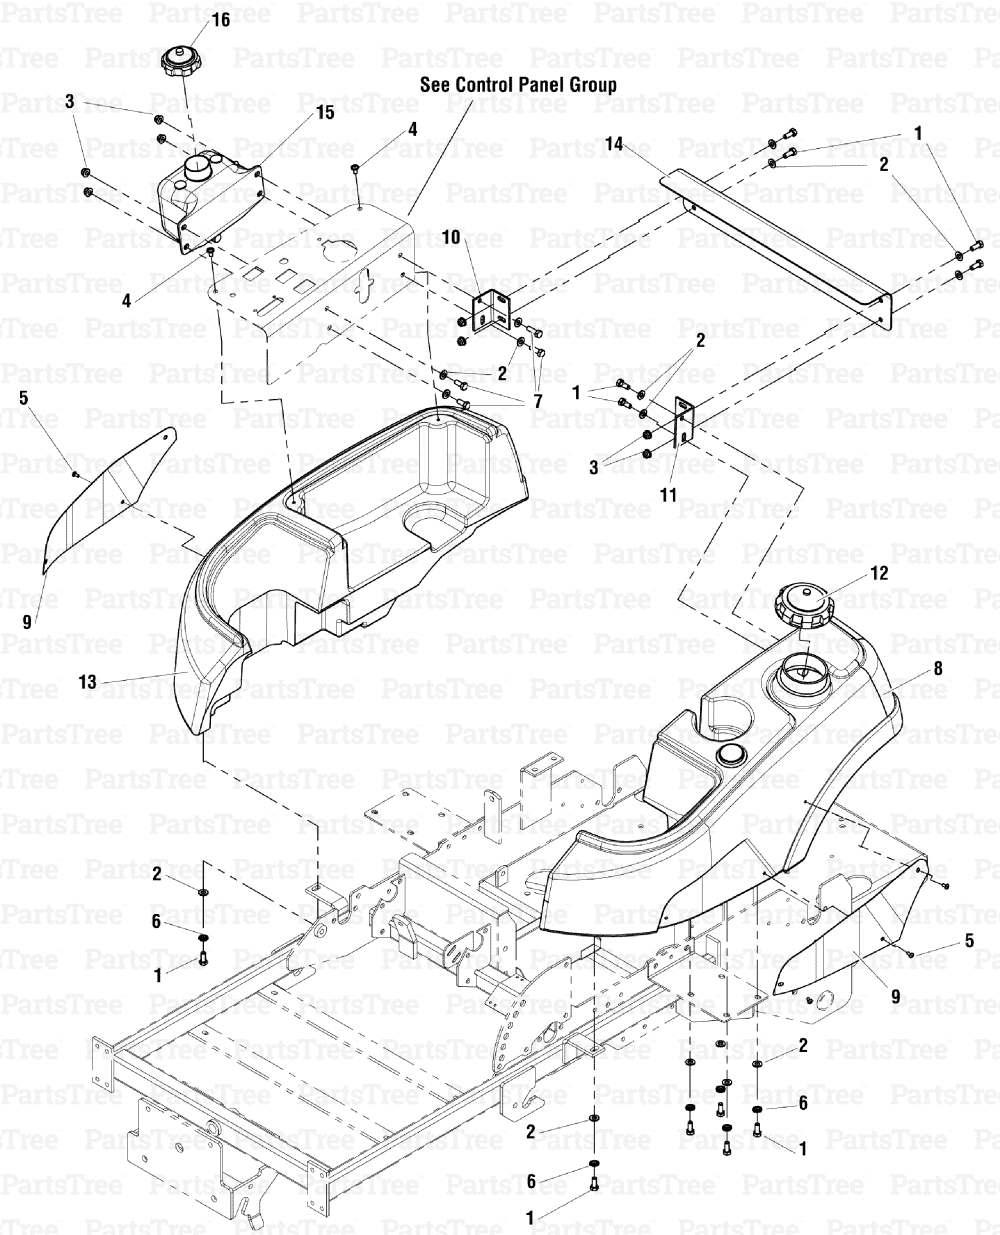 Simplicity 4211 Drive Belt Diagram Wiring Diagrams Data Base Schematic 5216 Riding Mowers Trusted Rh Hamze Co On Husqvarna Model Yth20k46 For